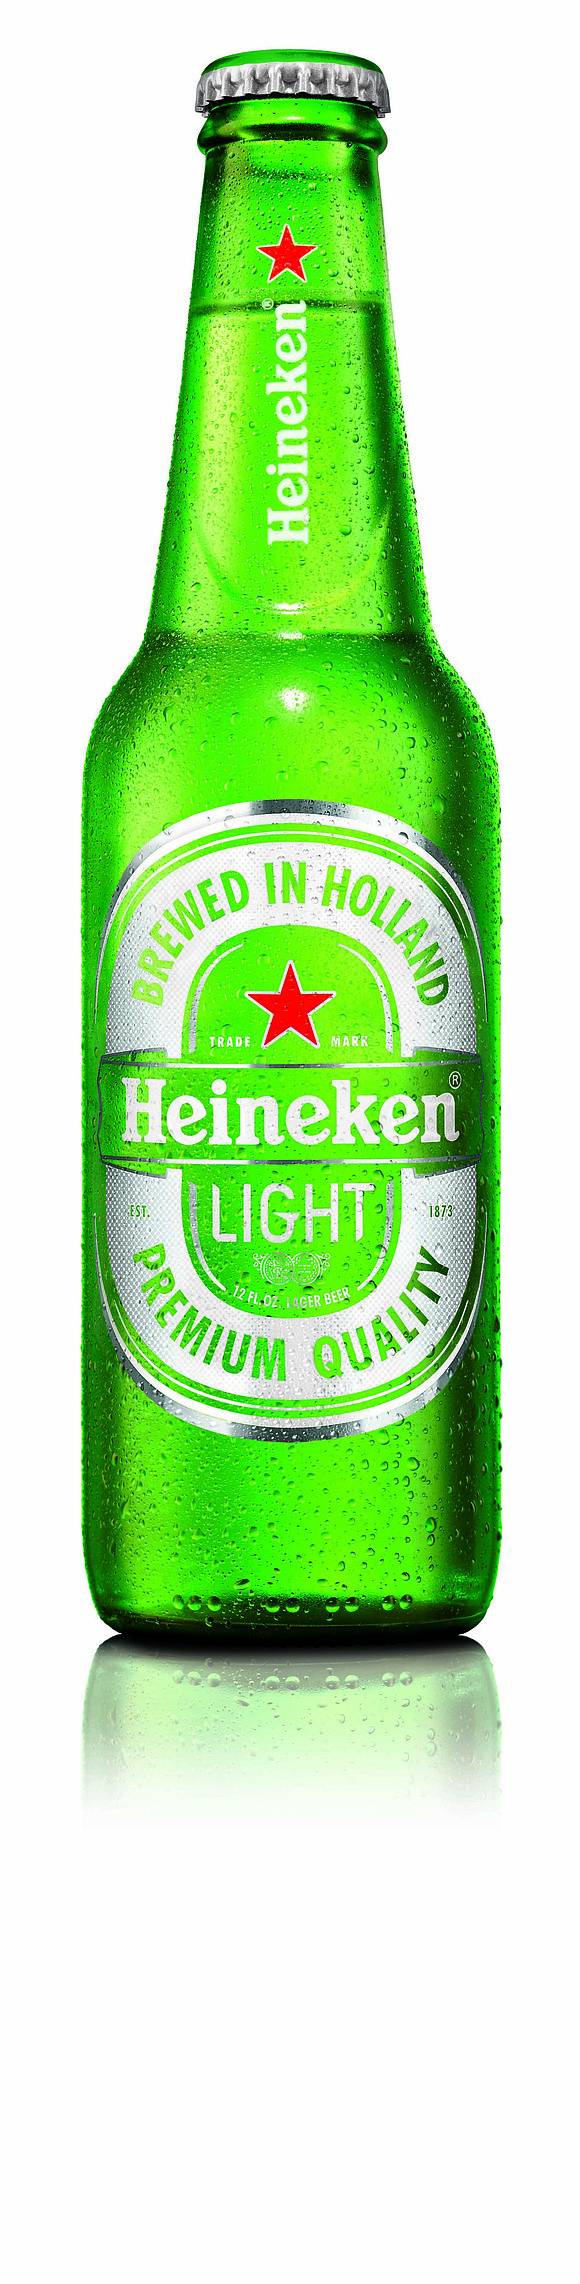 "Heineken said Monday it has pulled an ad with the tagline ""Sometimes lighter is better"" after critics slammed it as ..."